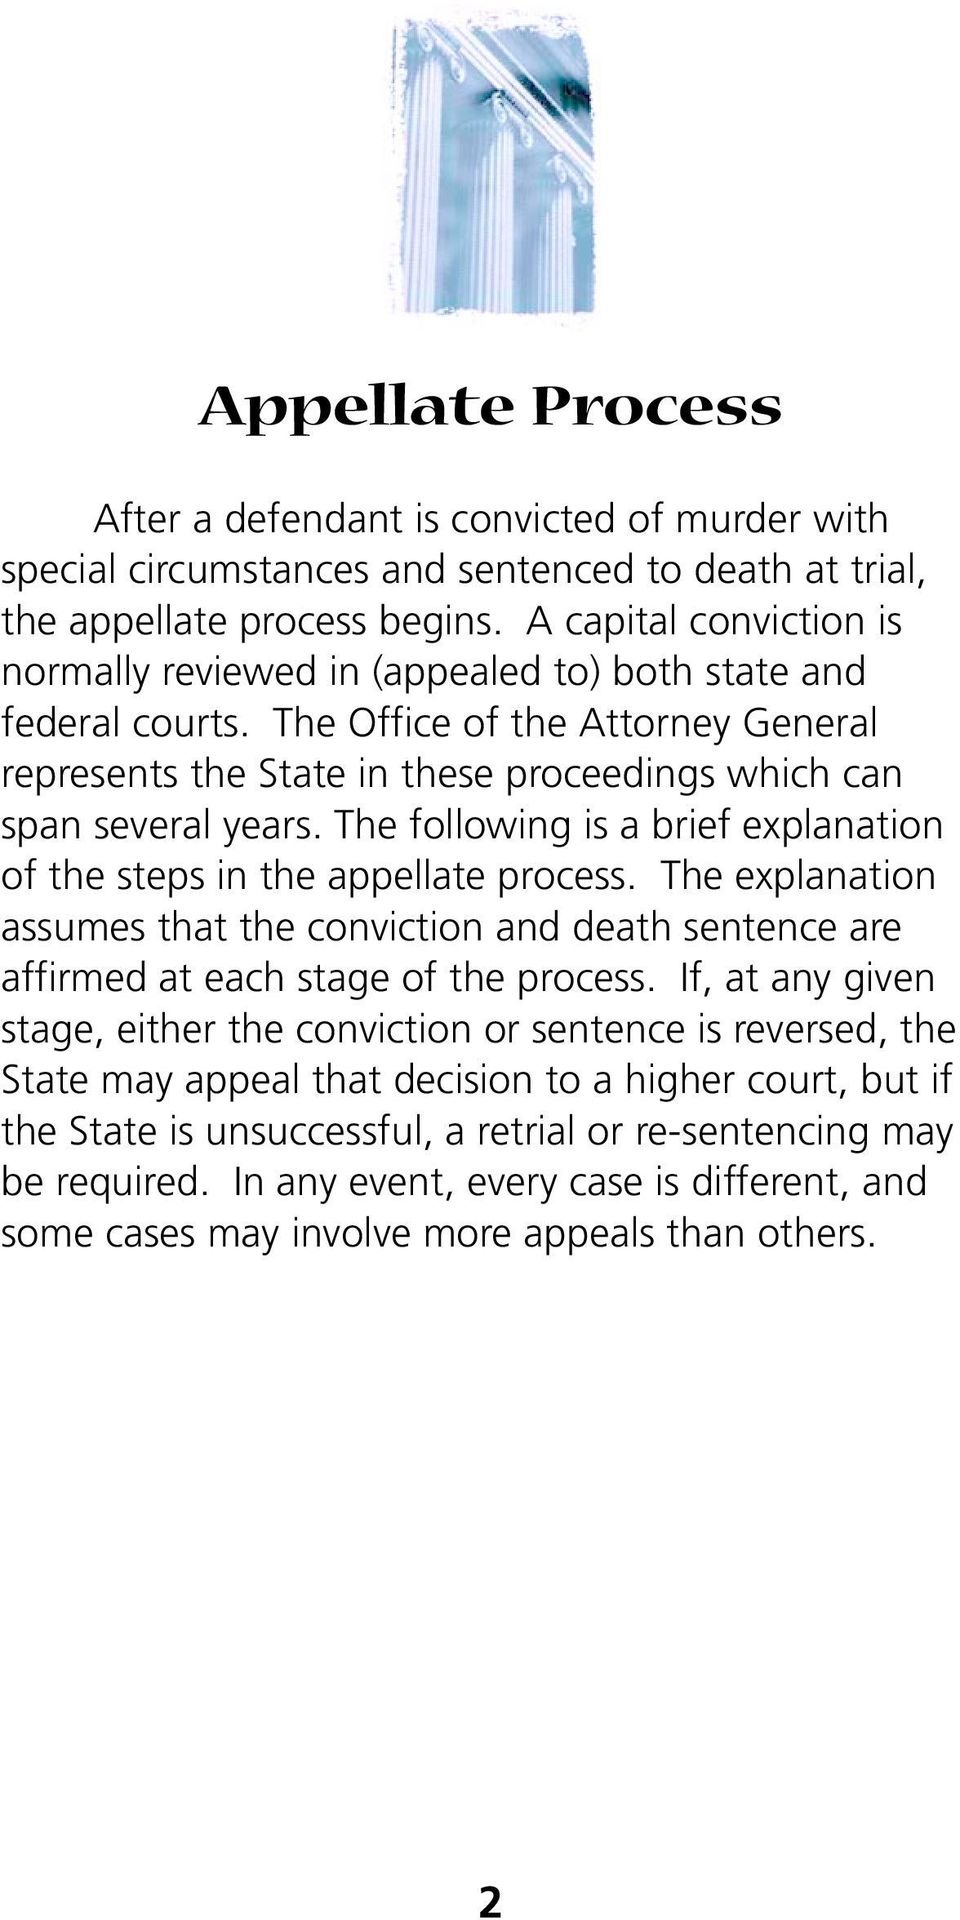 The following is a brief explanation of the steps in the appellate process. The explanation assumes that the conviction and death sentence are affirmed at each stage of the process.